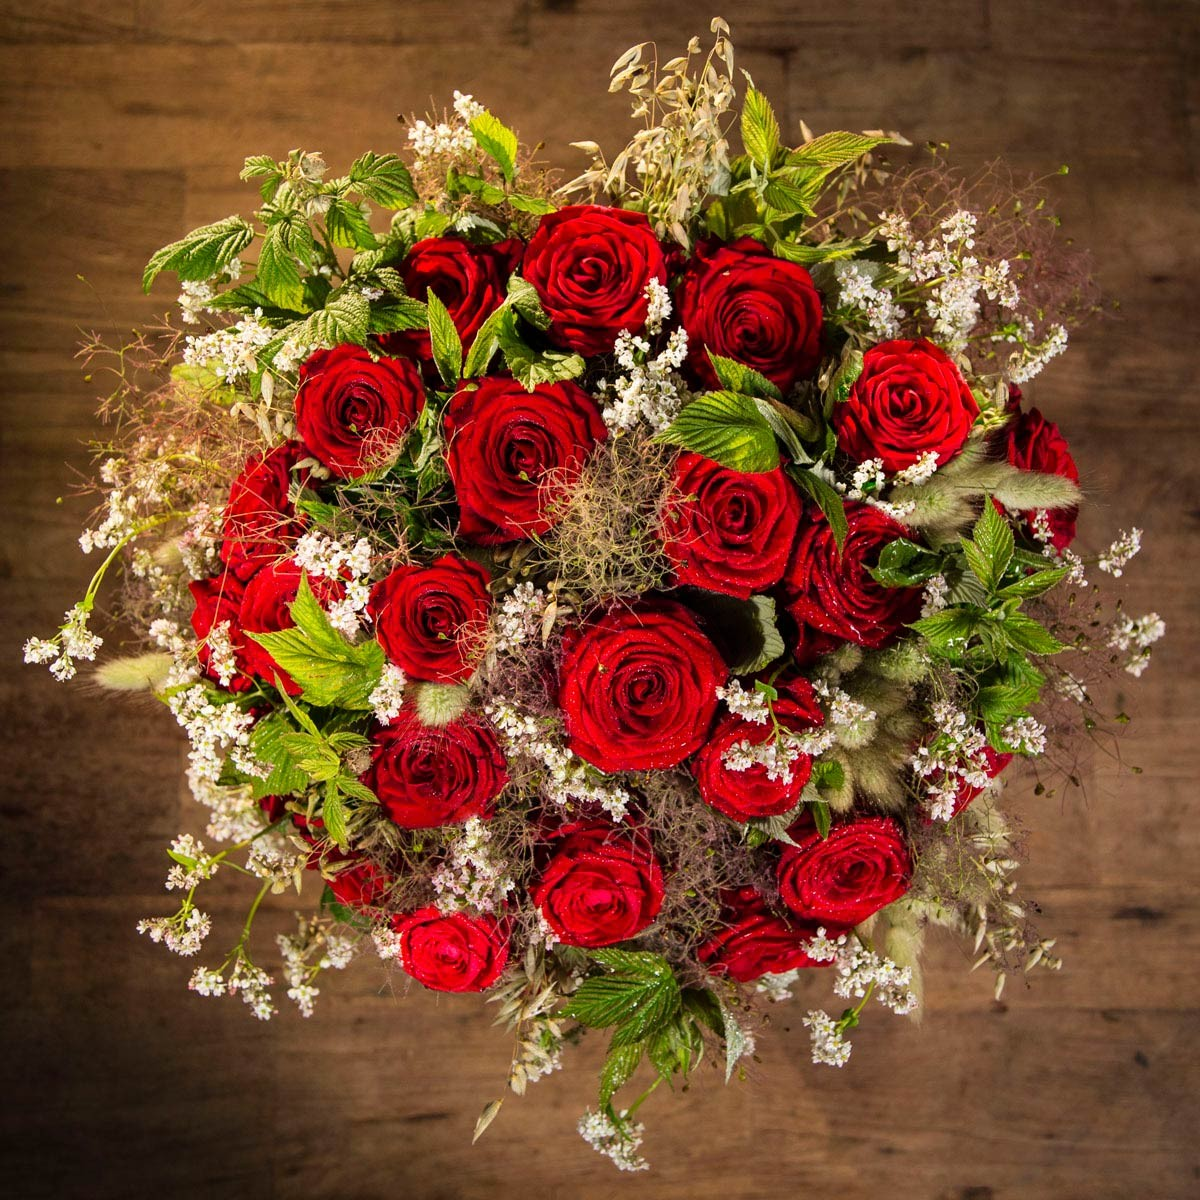 Bouquet de roses rouges les roses rouges de chloris for Bouquet de rose